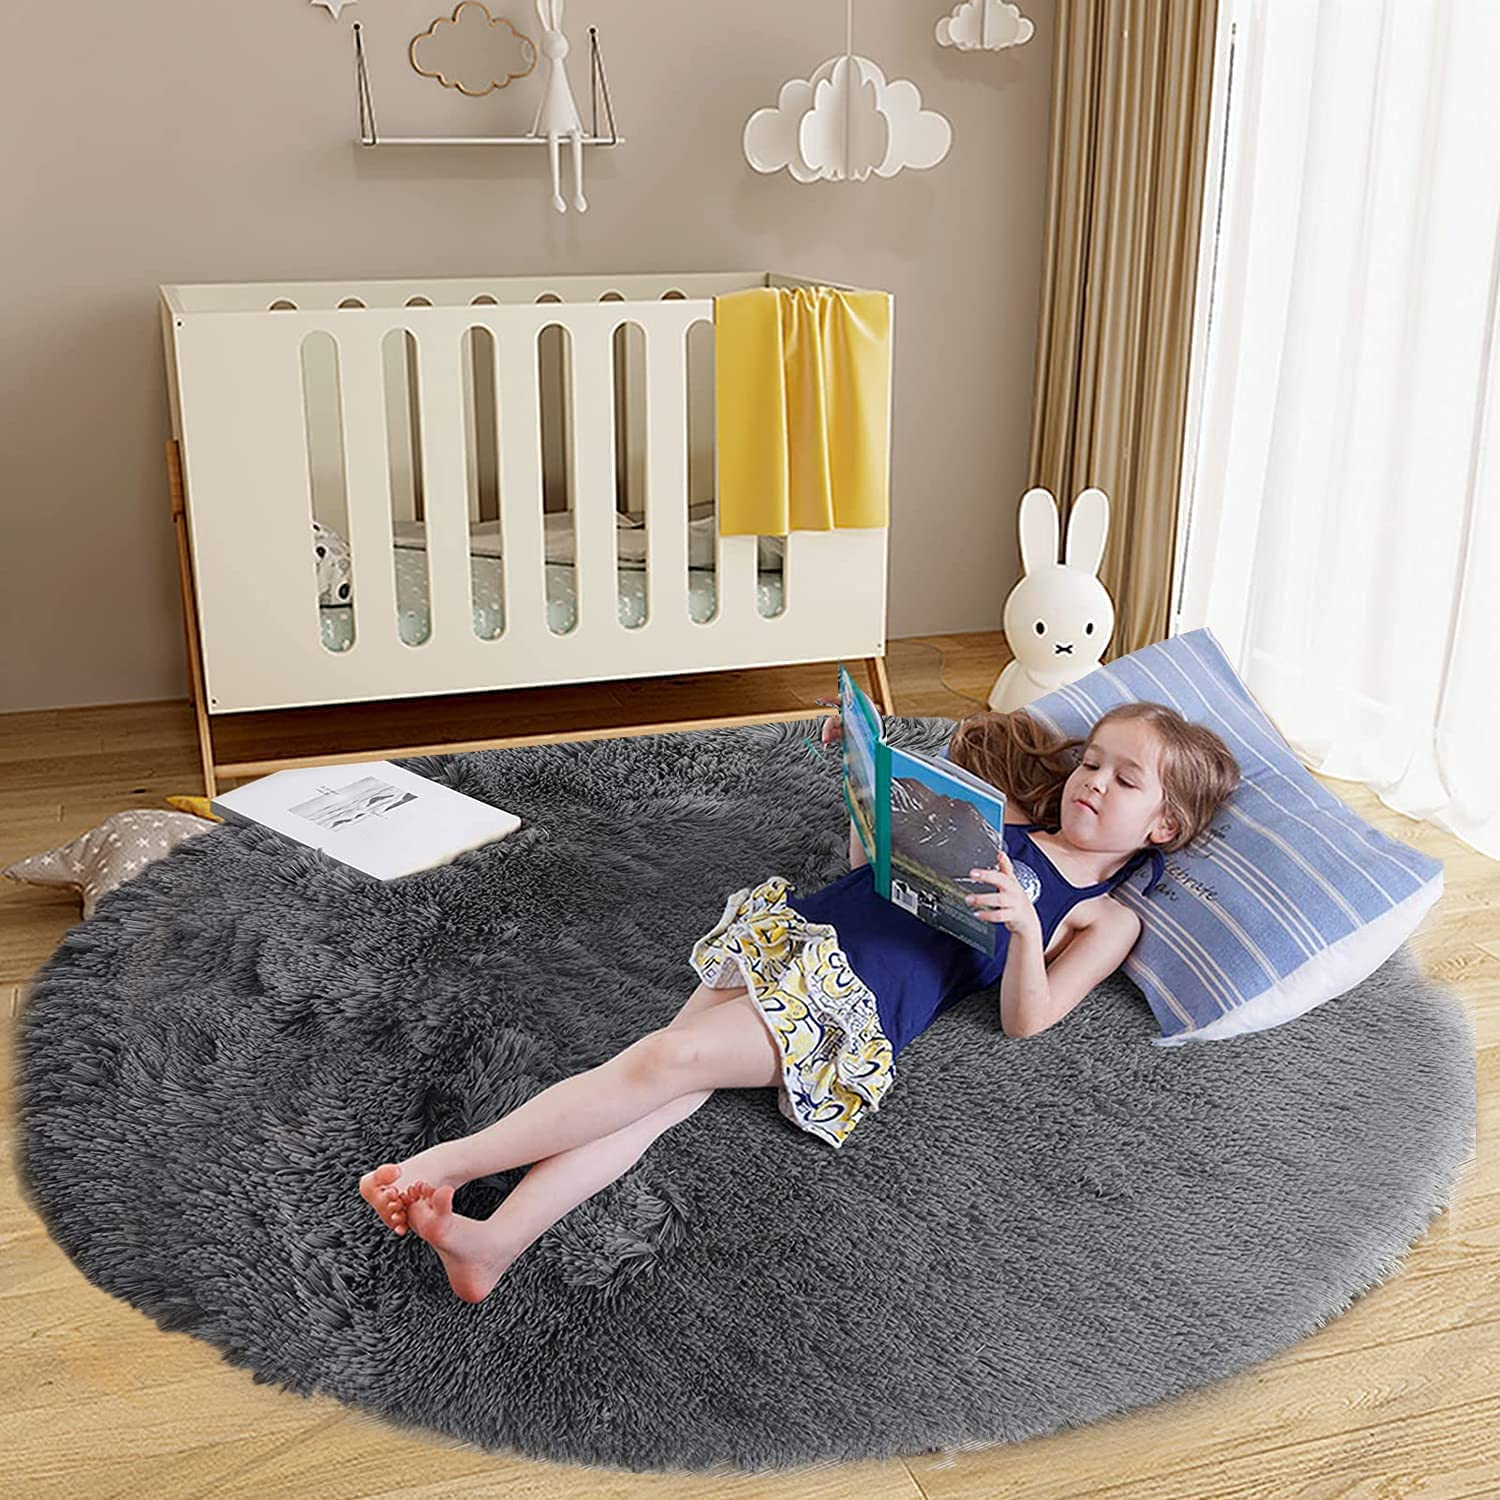 Gliwen Super Soft Round Rug NEW before selling Bedroom New products world's highest quality popular a for Fluffy Kids